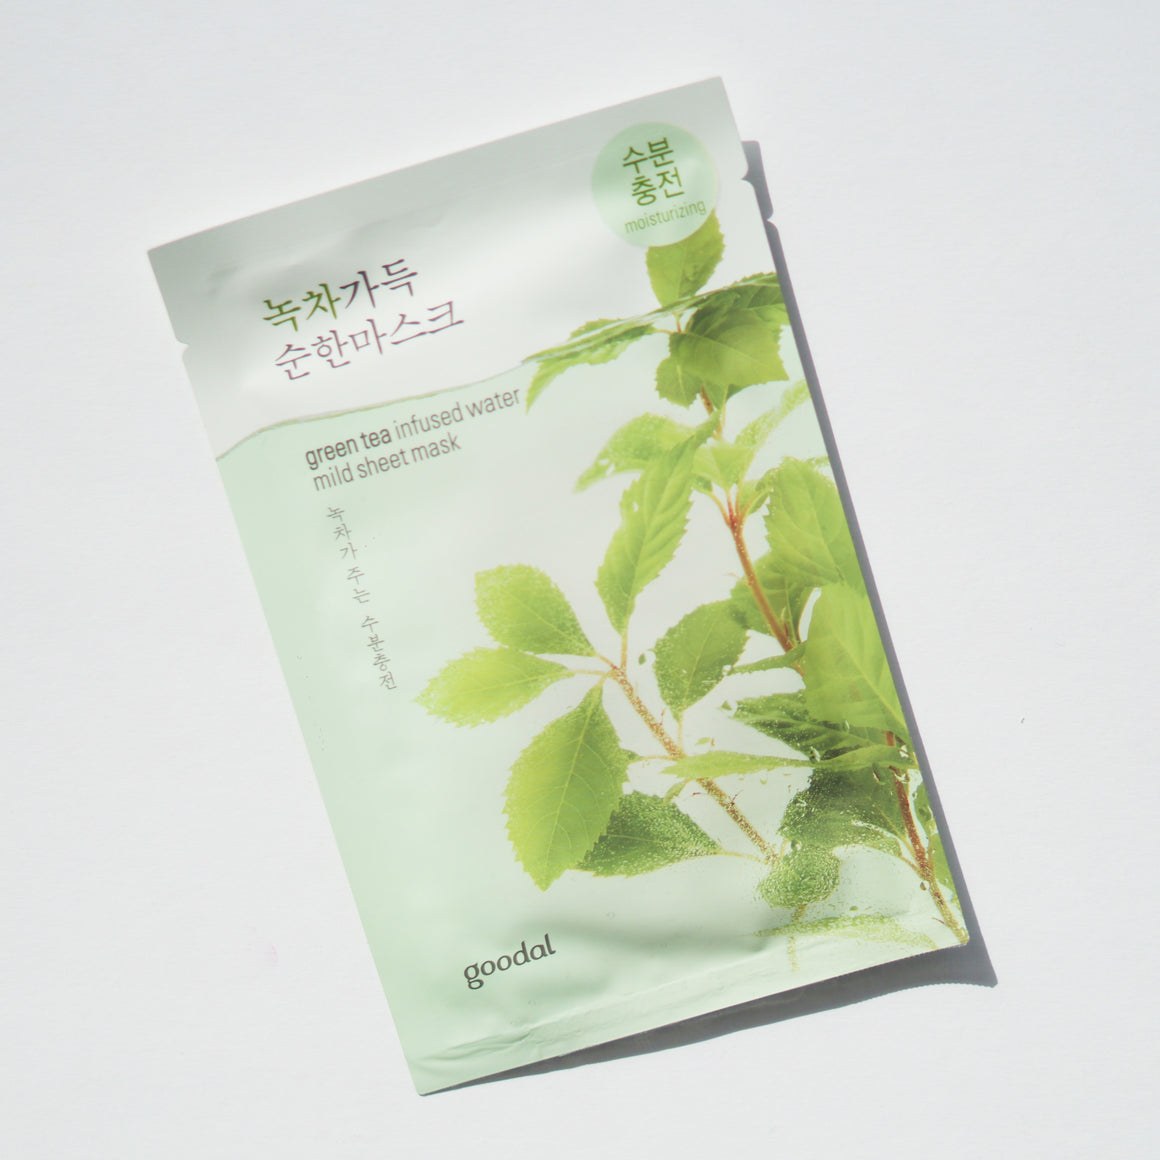 Goodal Green Tea Infused Water Mild Sheet Mask